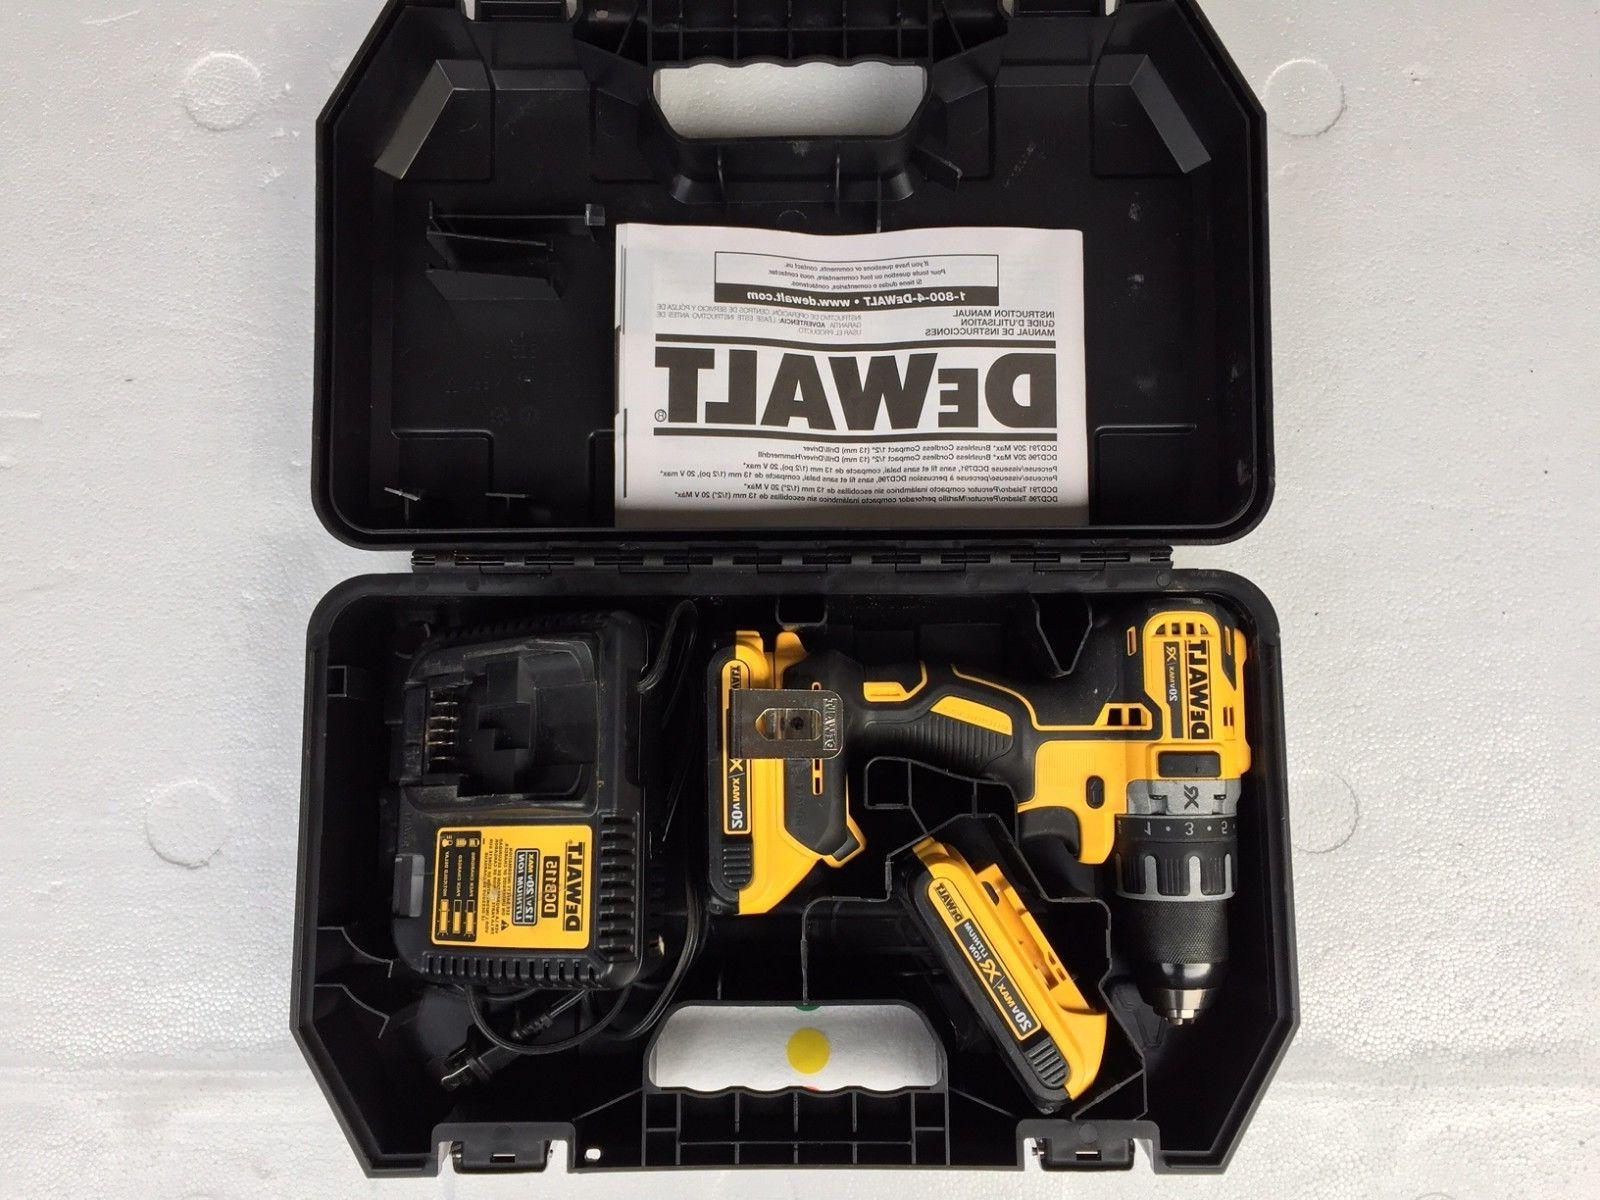 Dewalt DCD791D2 20V MAX Li-Ion 1/2 in. Brushless Drill Drive